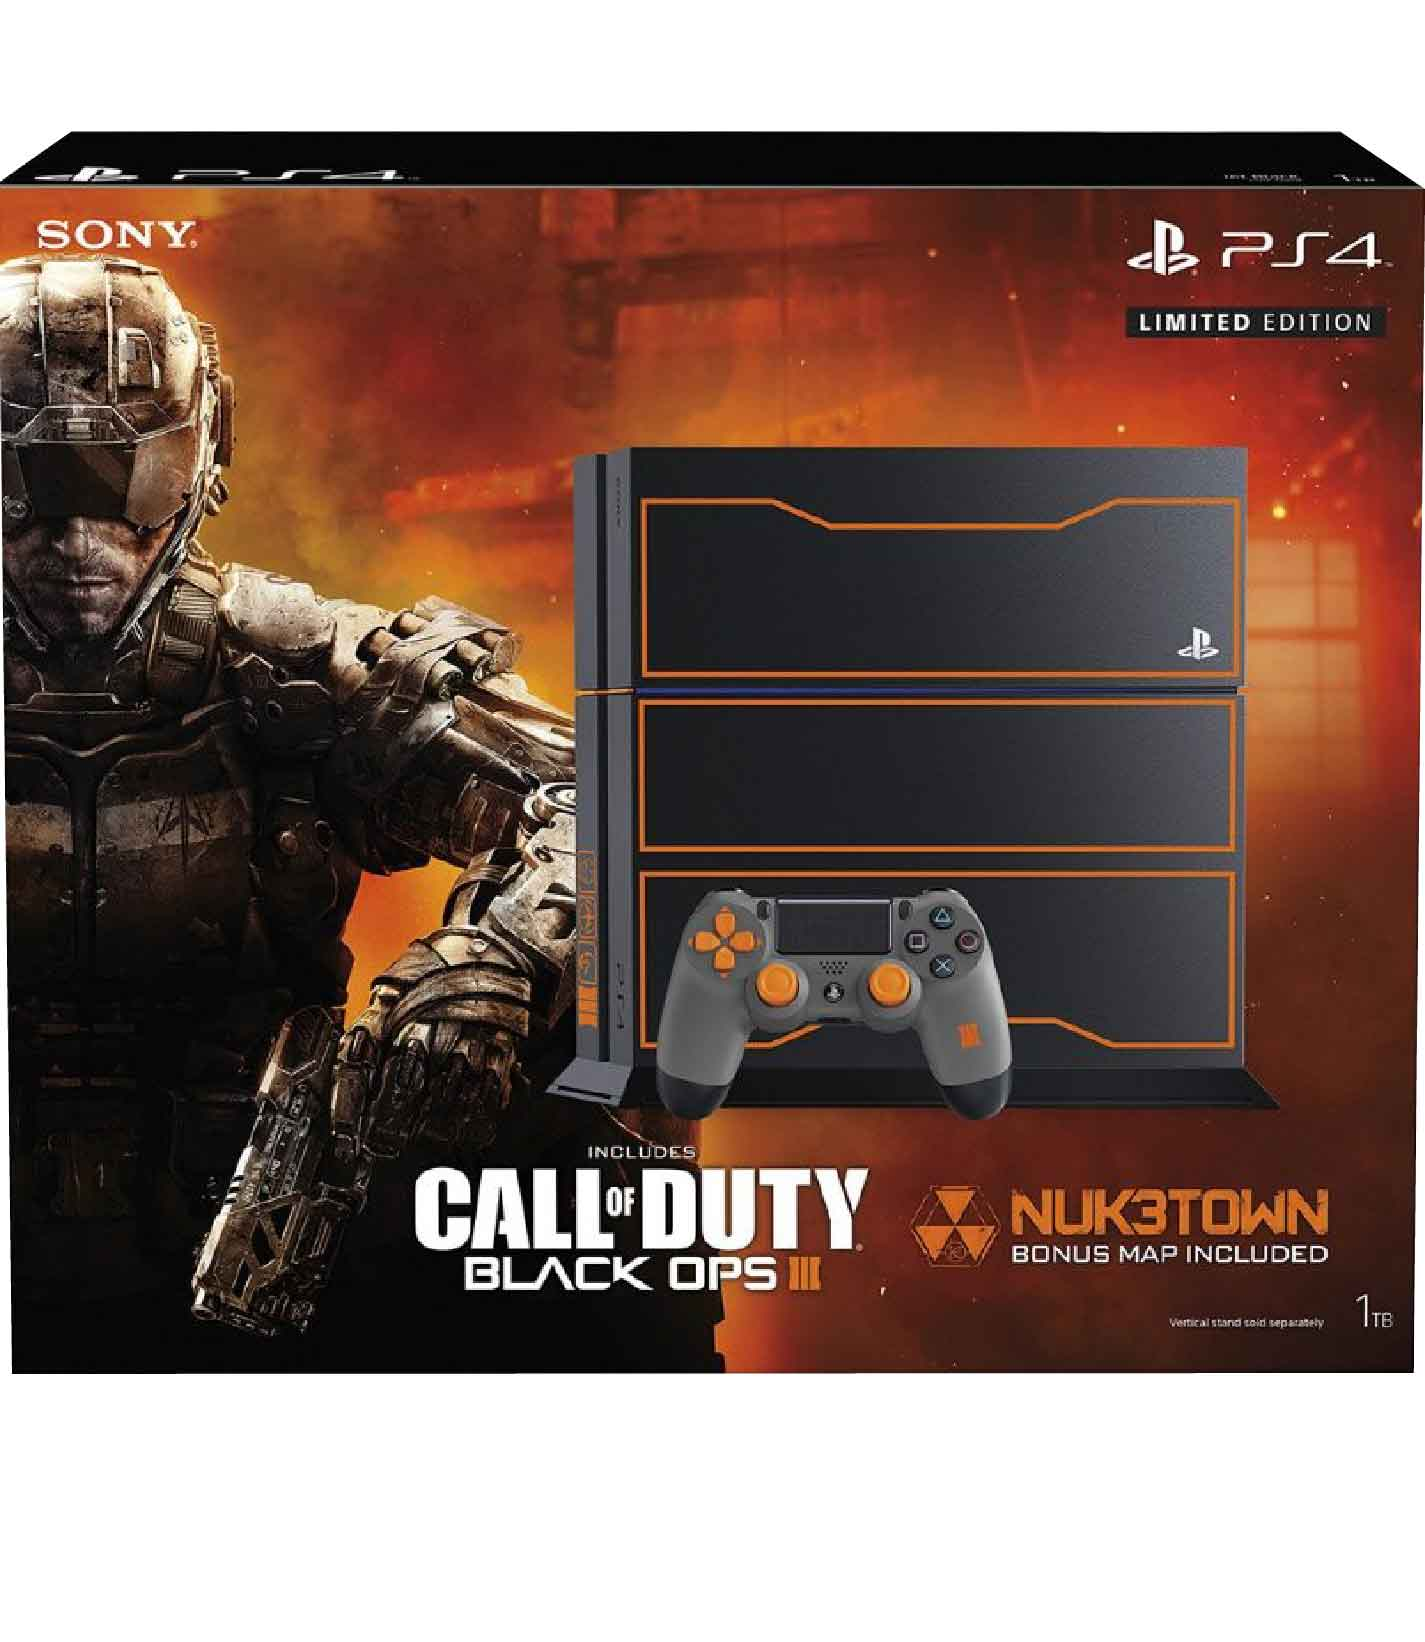 Sony Playstation 4 Ps4 Call Of Duty Black Ops 3 Limited Edition